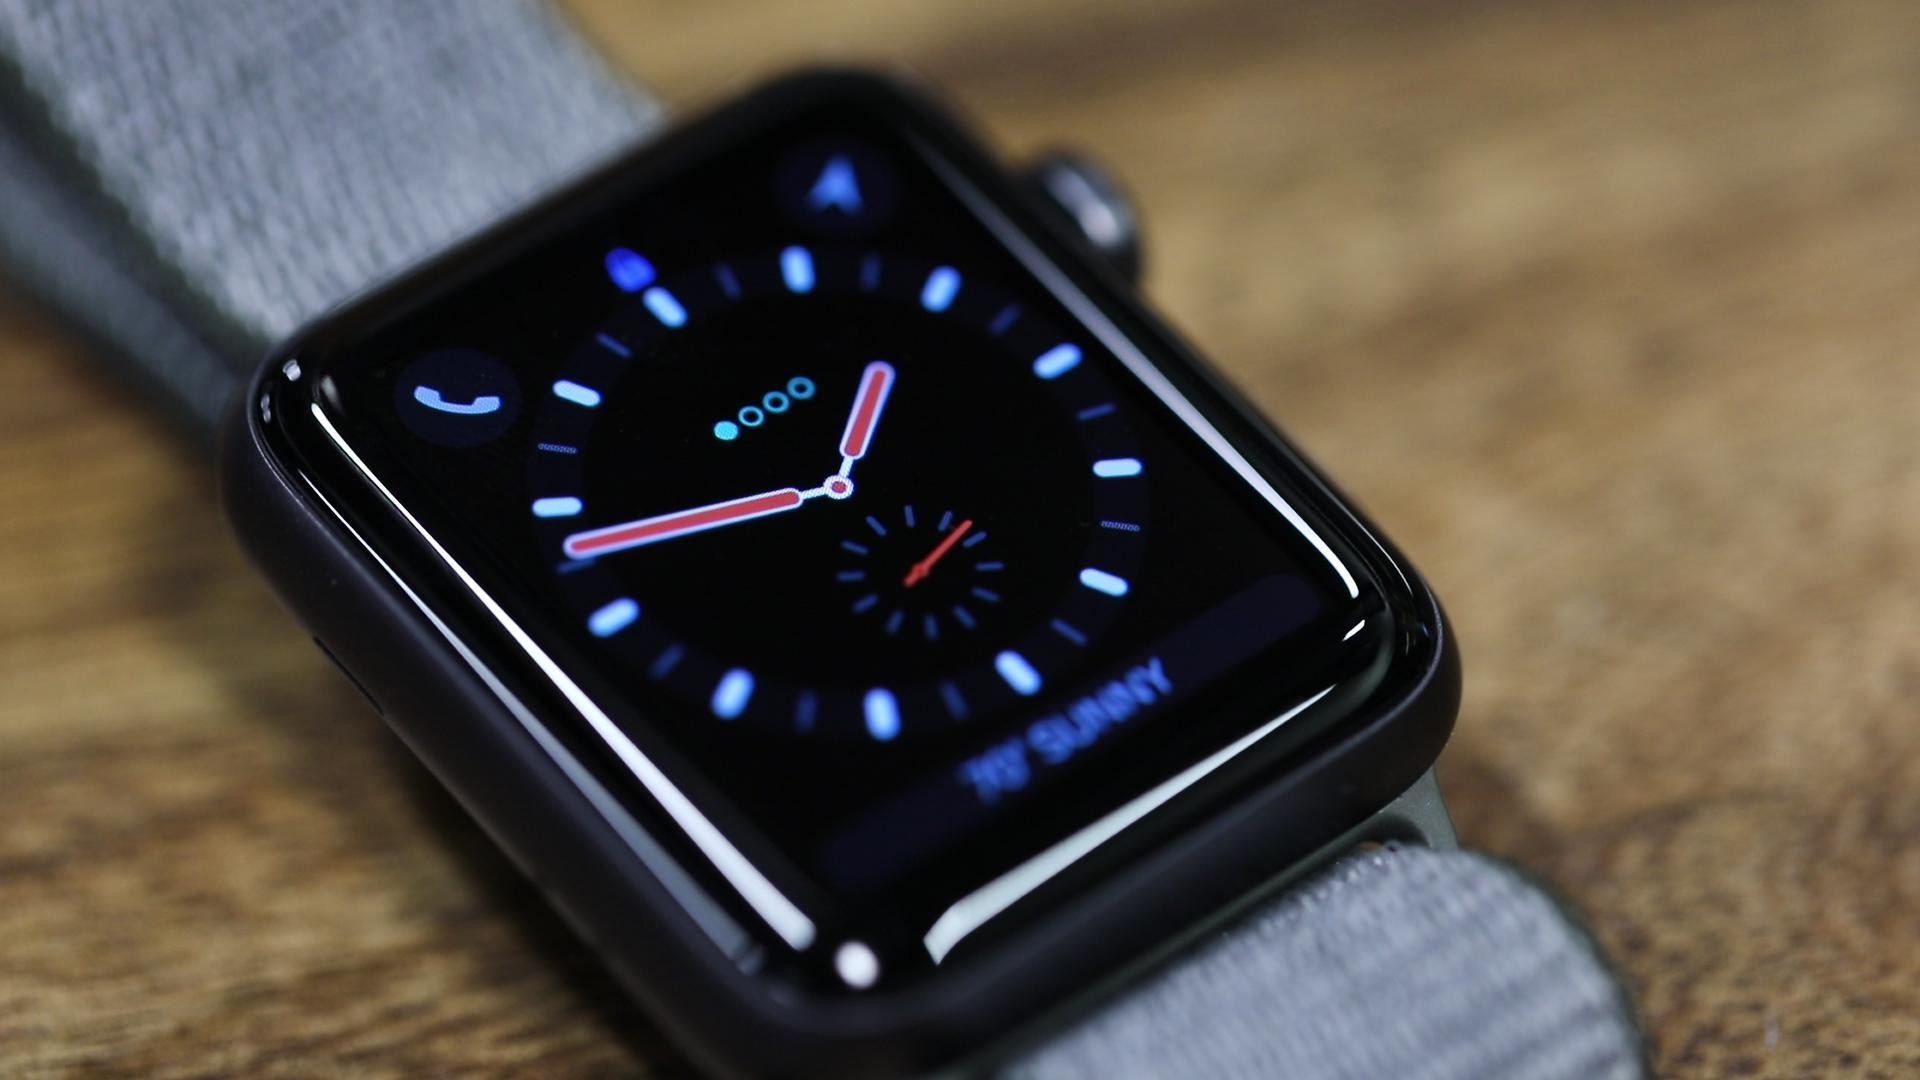 The Apple Watch is still the one to beat